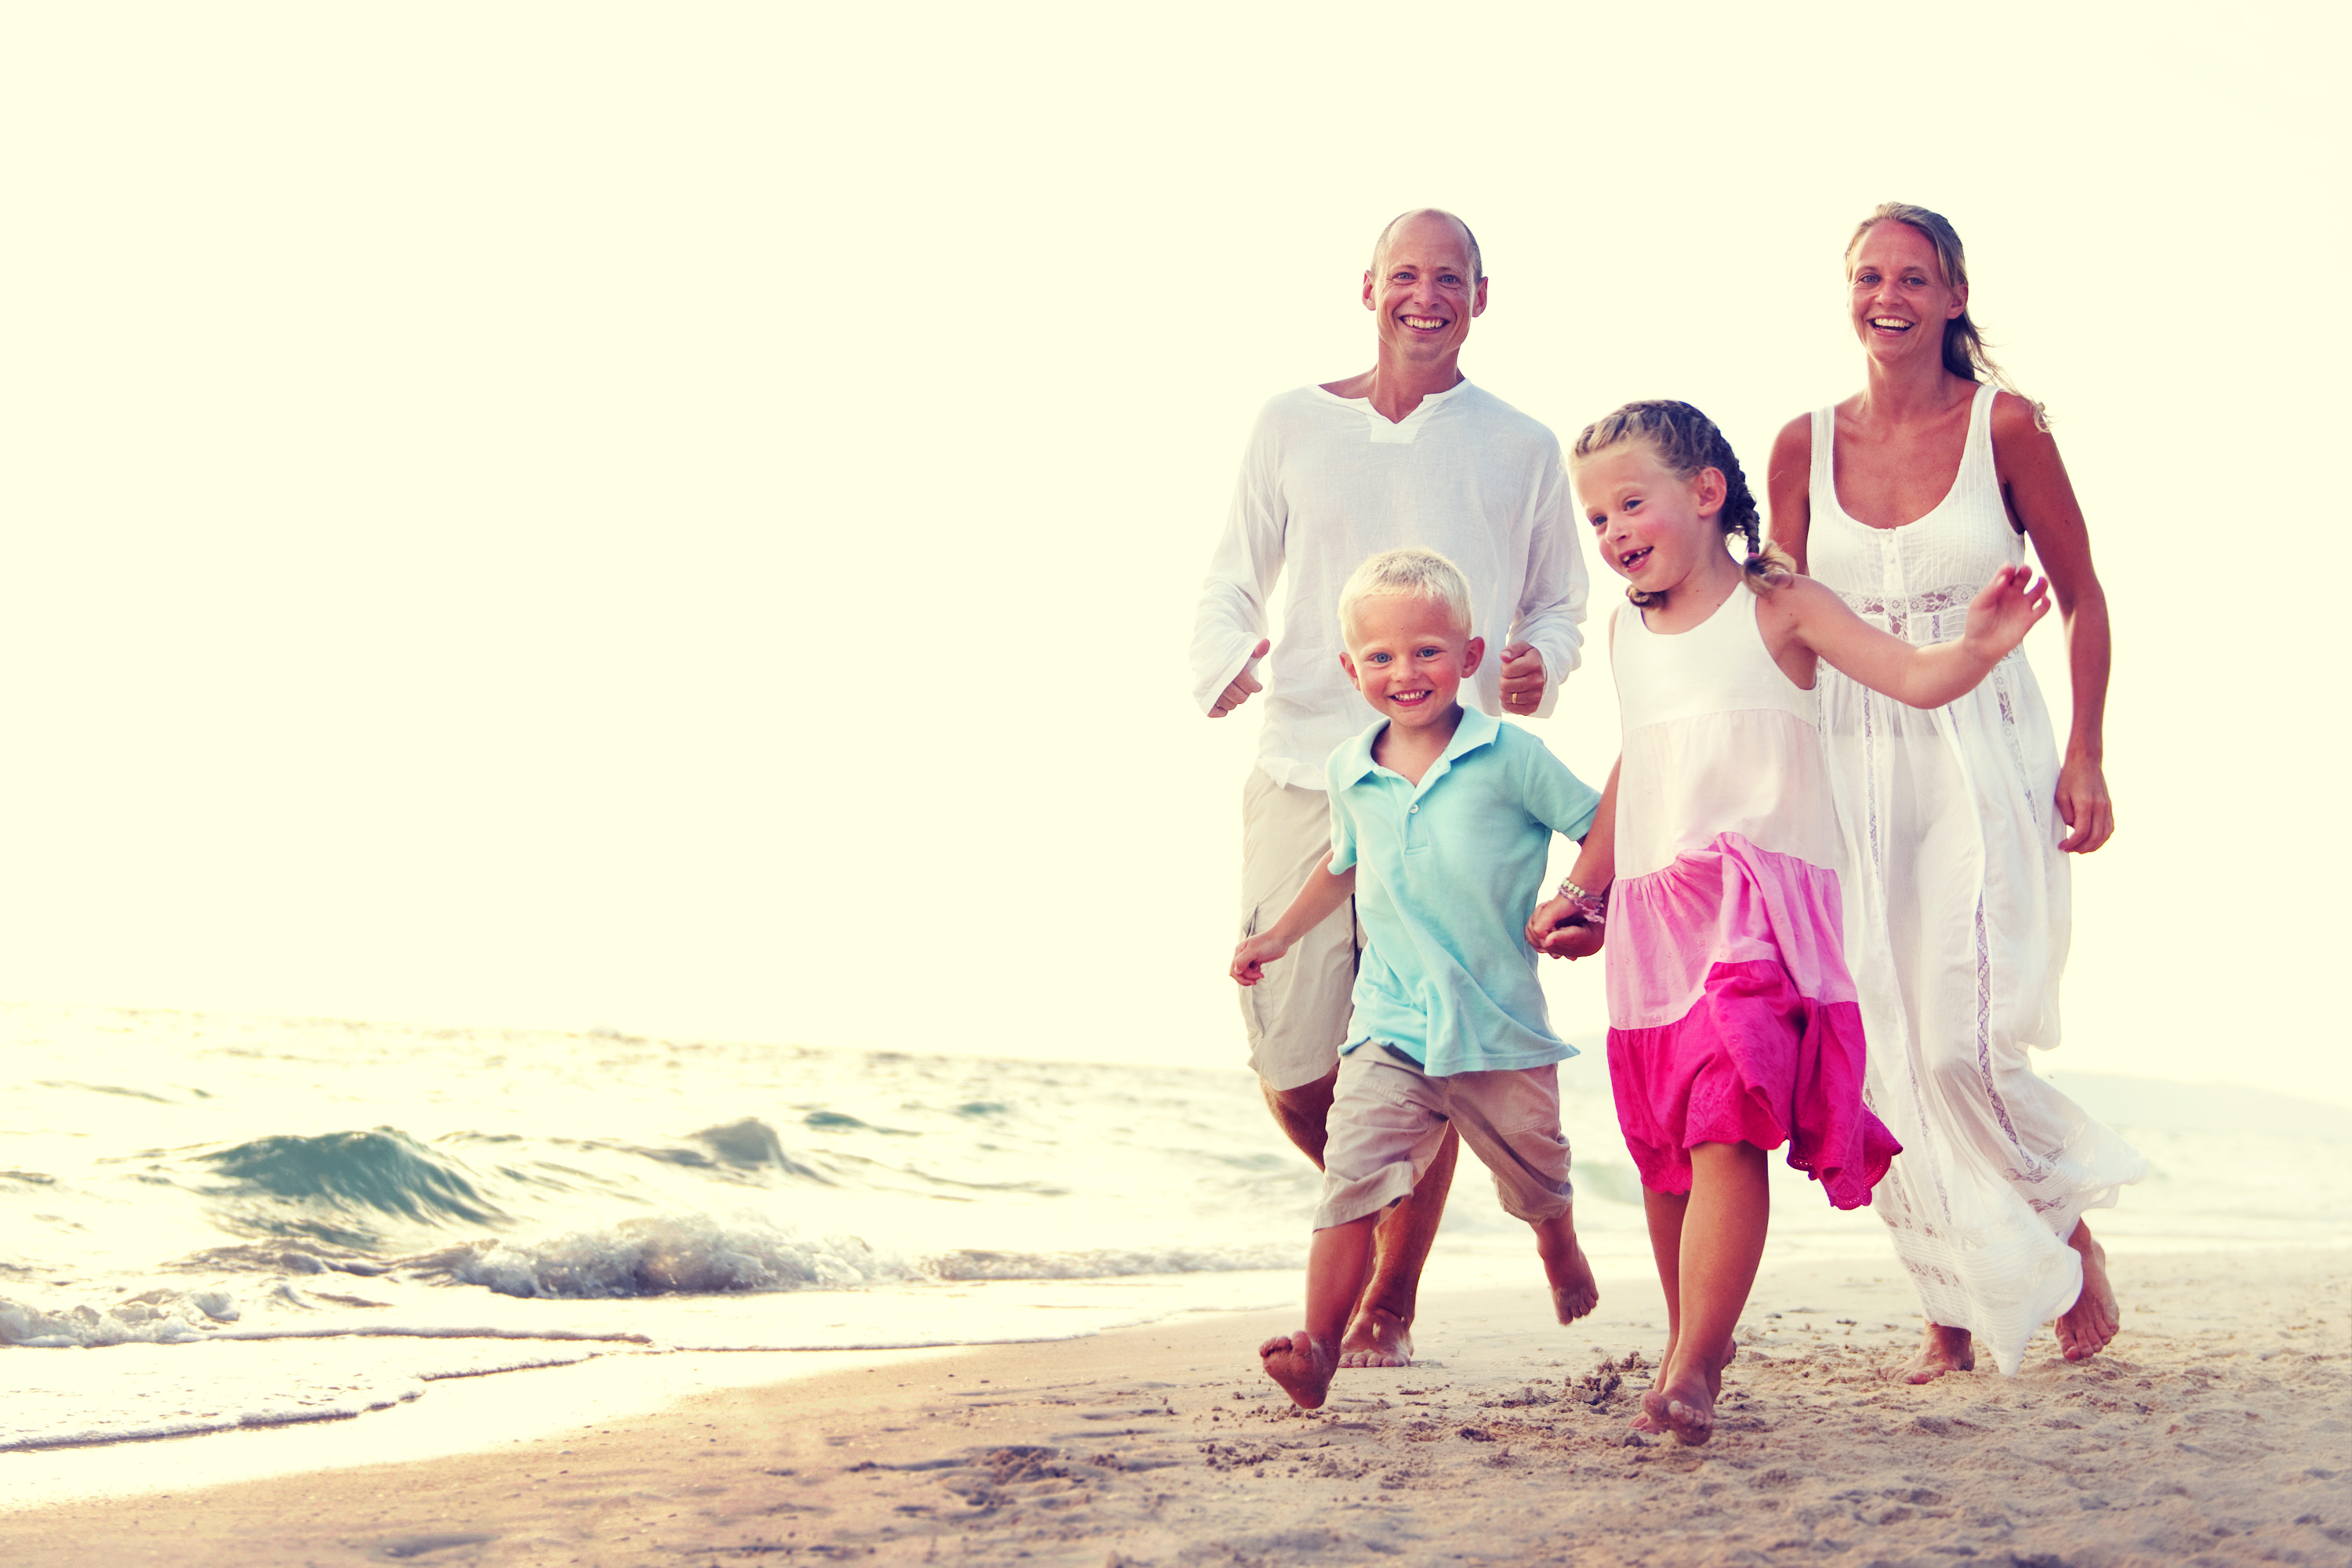 Family Running Playful Vacation Travel Holiday Concept